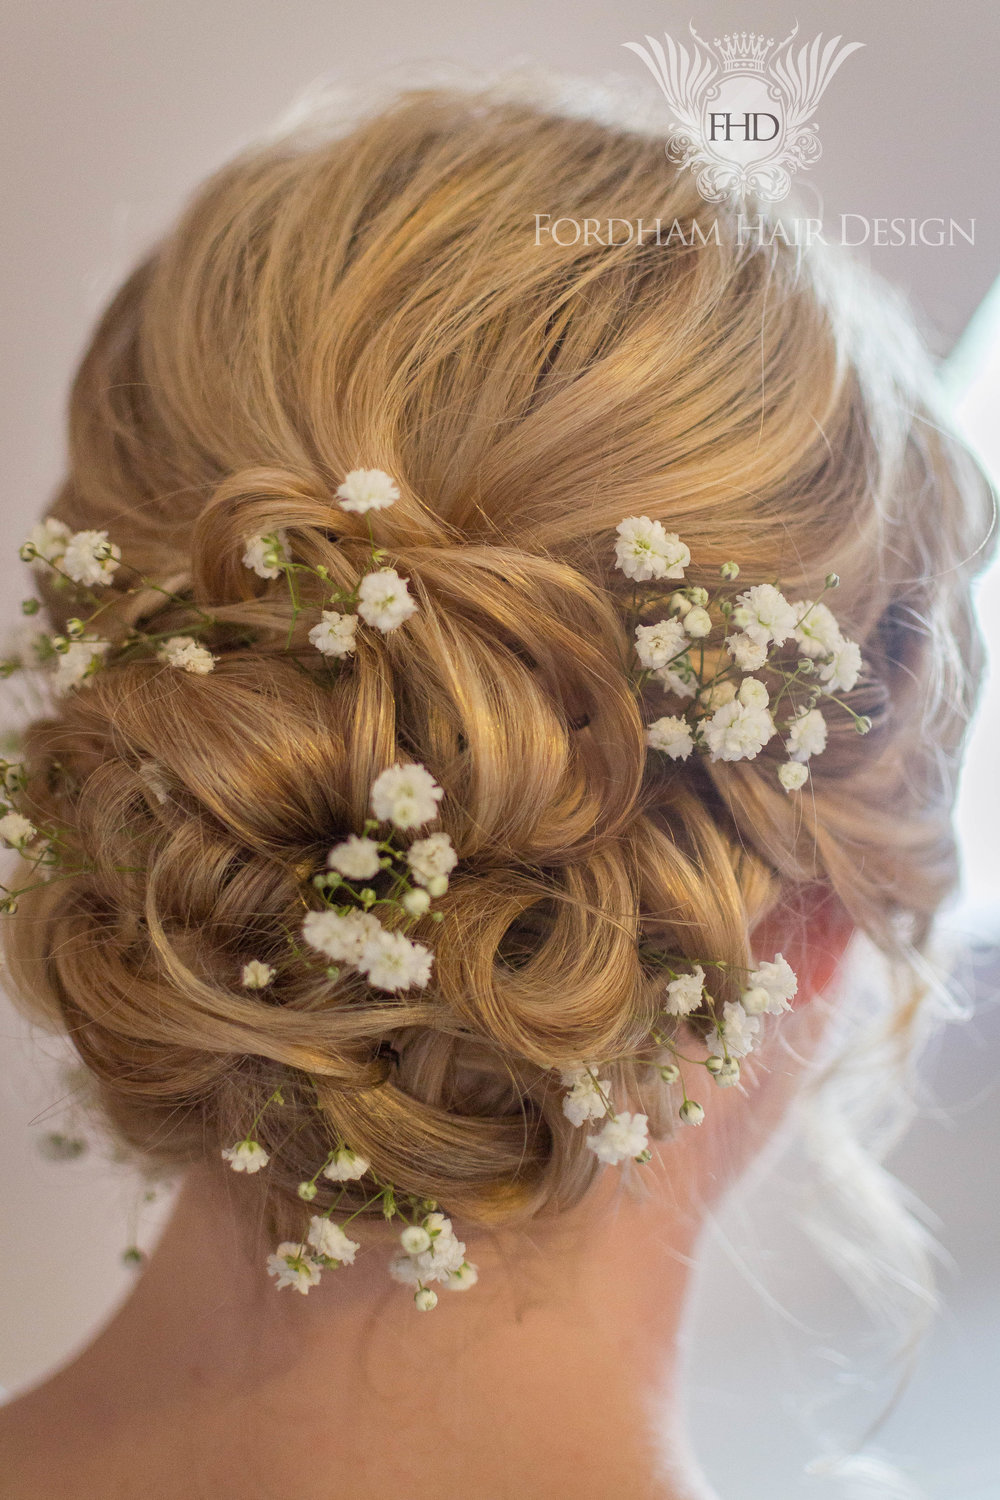 Tousled wedding hair